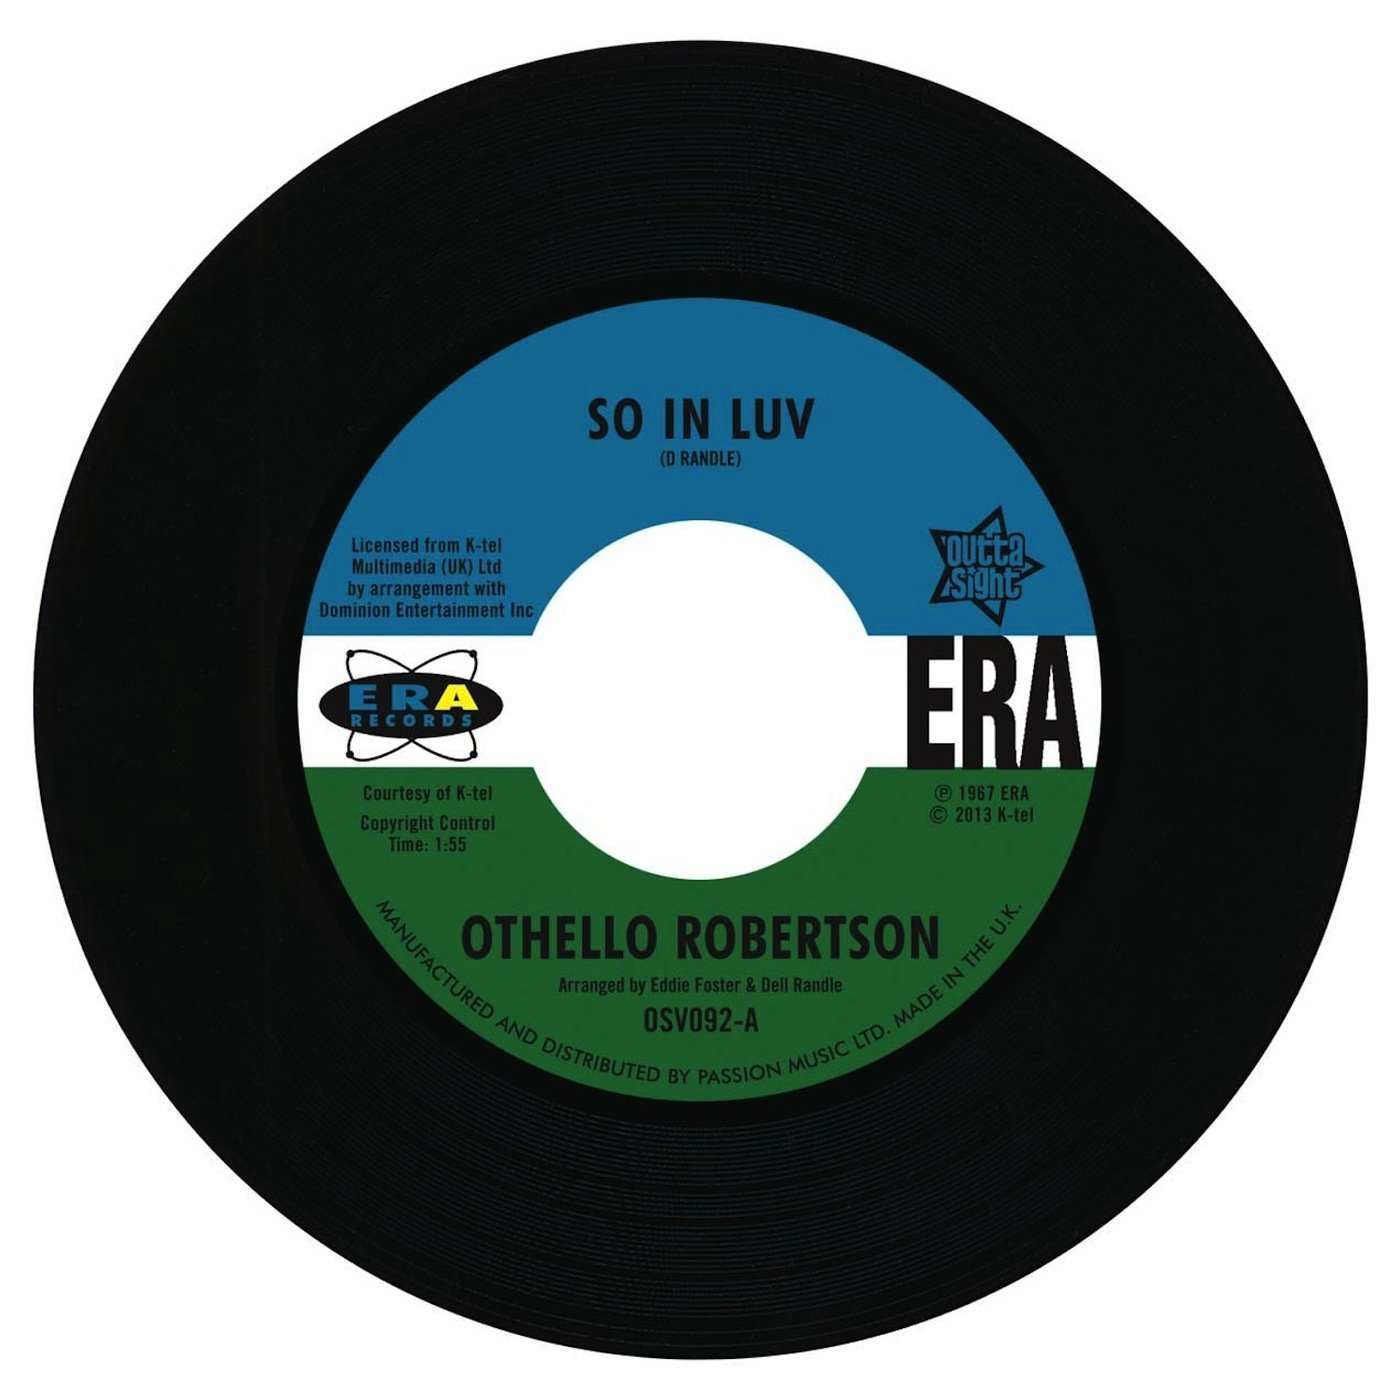 Othello Robertson – So In Luv / Steve Flanagan – I've Arrived 45 (Outta Sight) 7″ Vinyl